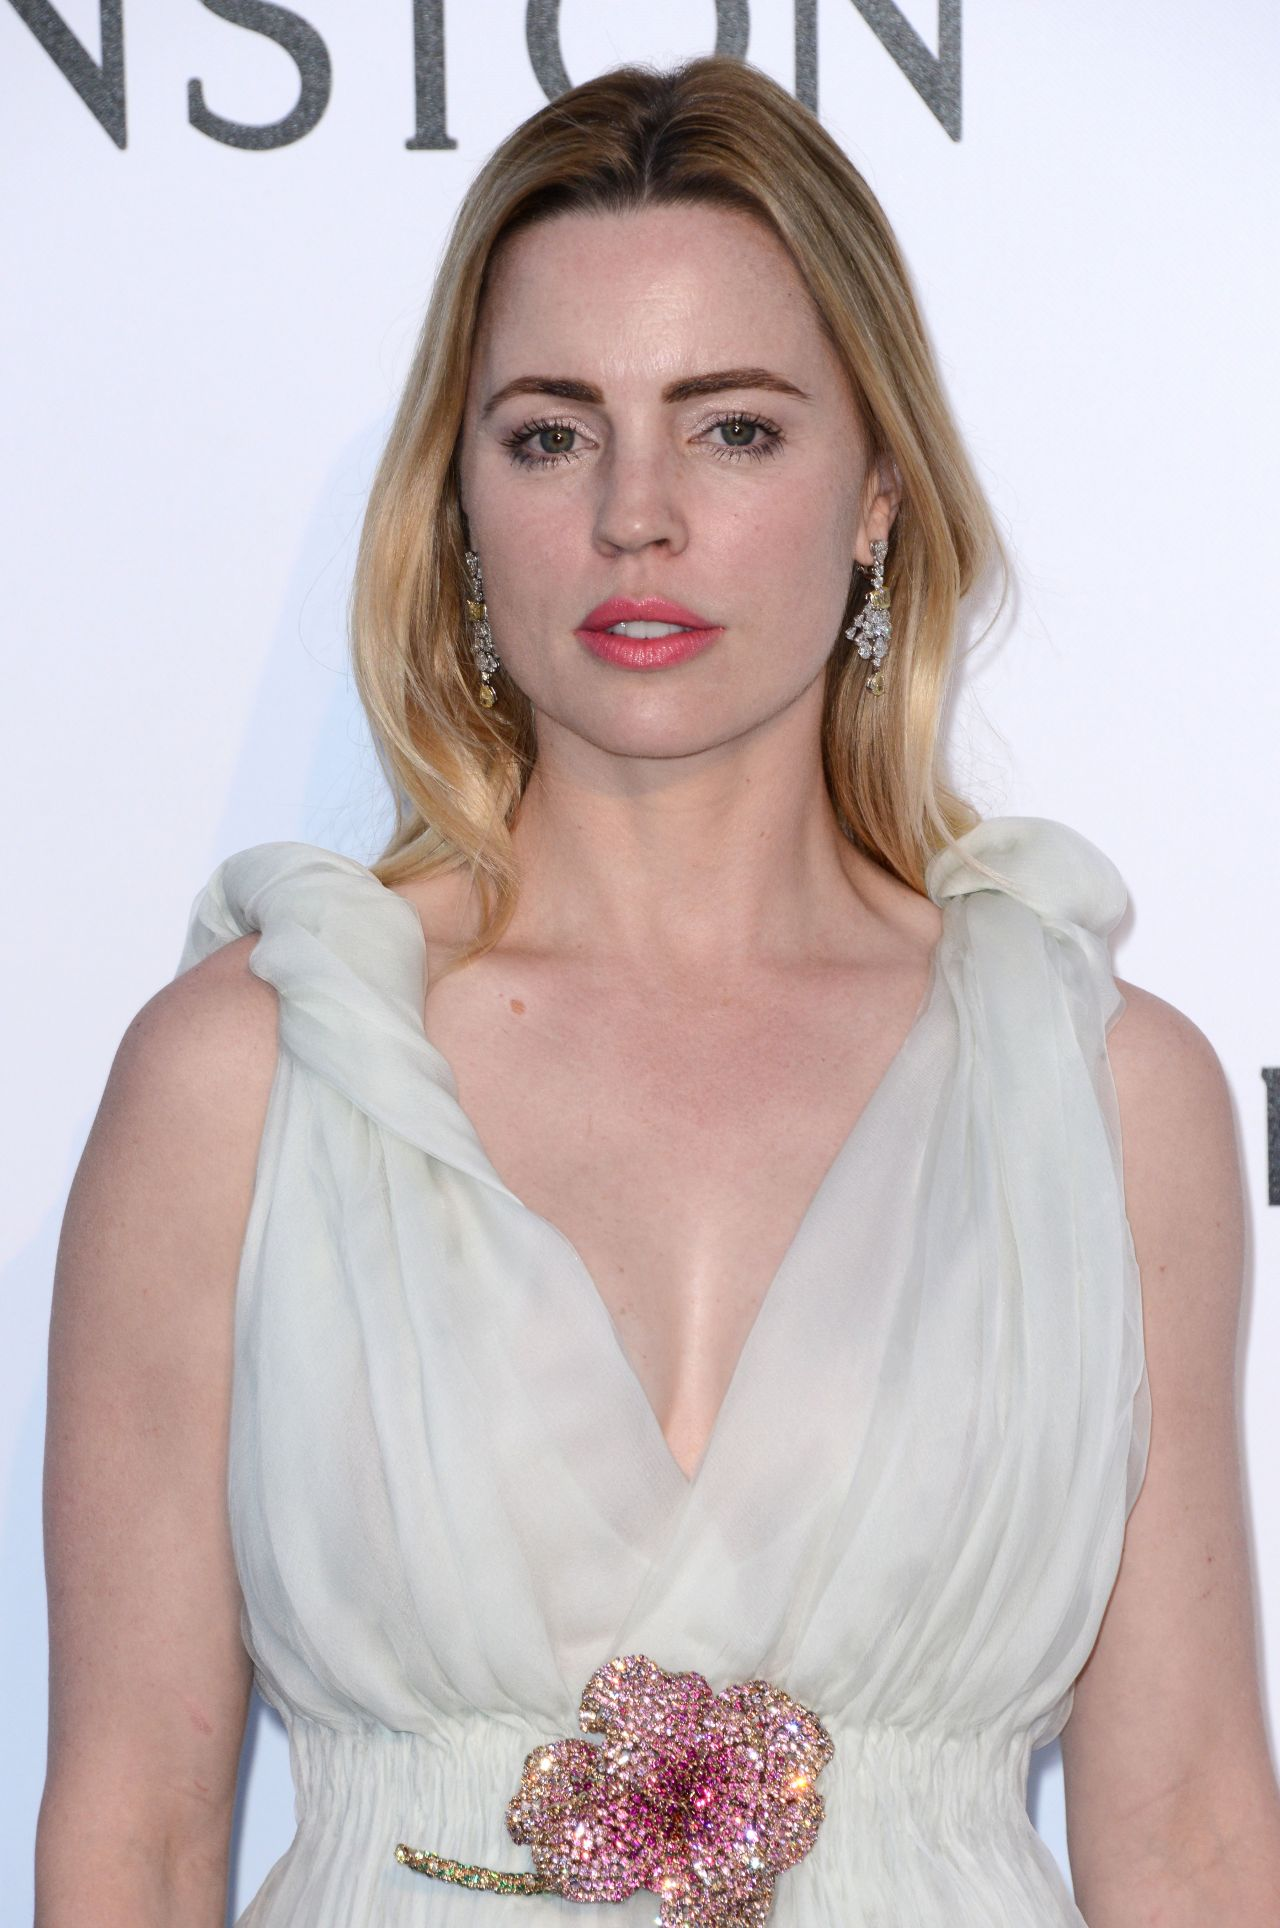 Pics Melissa George nude (23 photo), Pussy, Leaked, Instagram, cleavage 2018